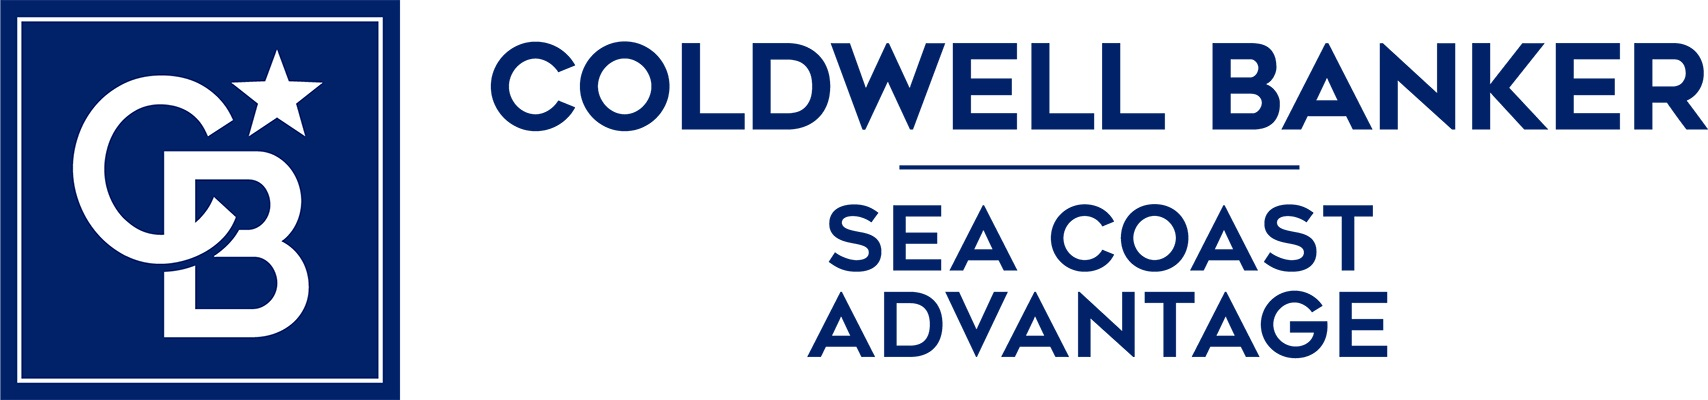 Marvin Henry - Coldwell Banker Sea Coast Advantage Realty Logo